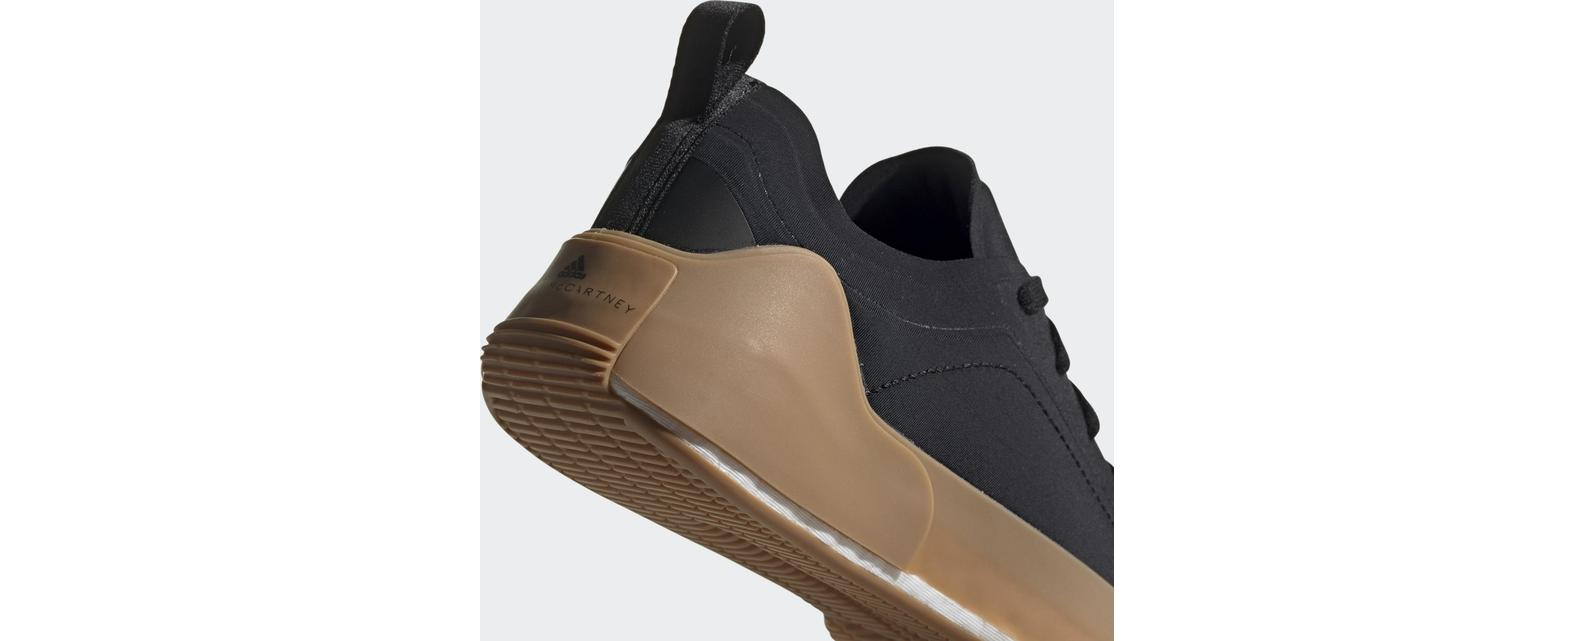 adidas by Stella McCartney BLACK / Core Black / Off White